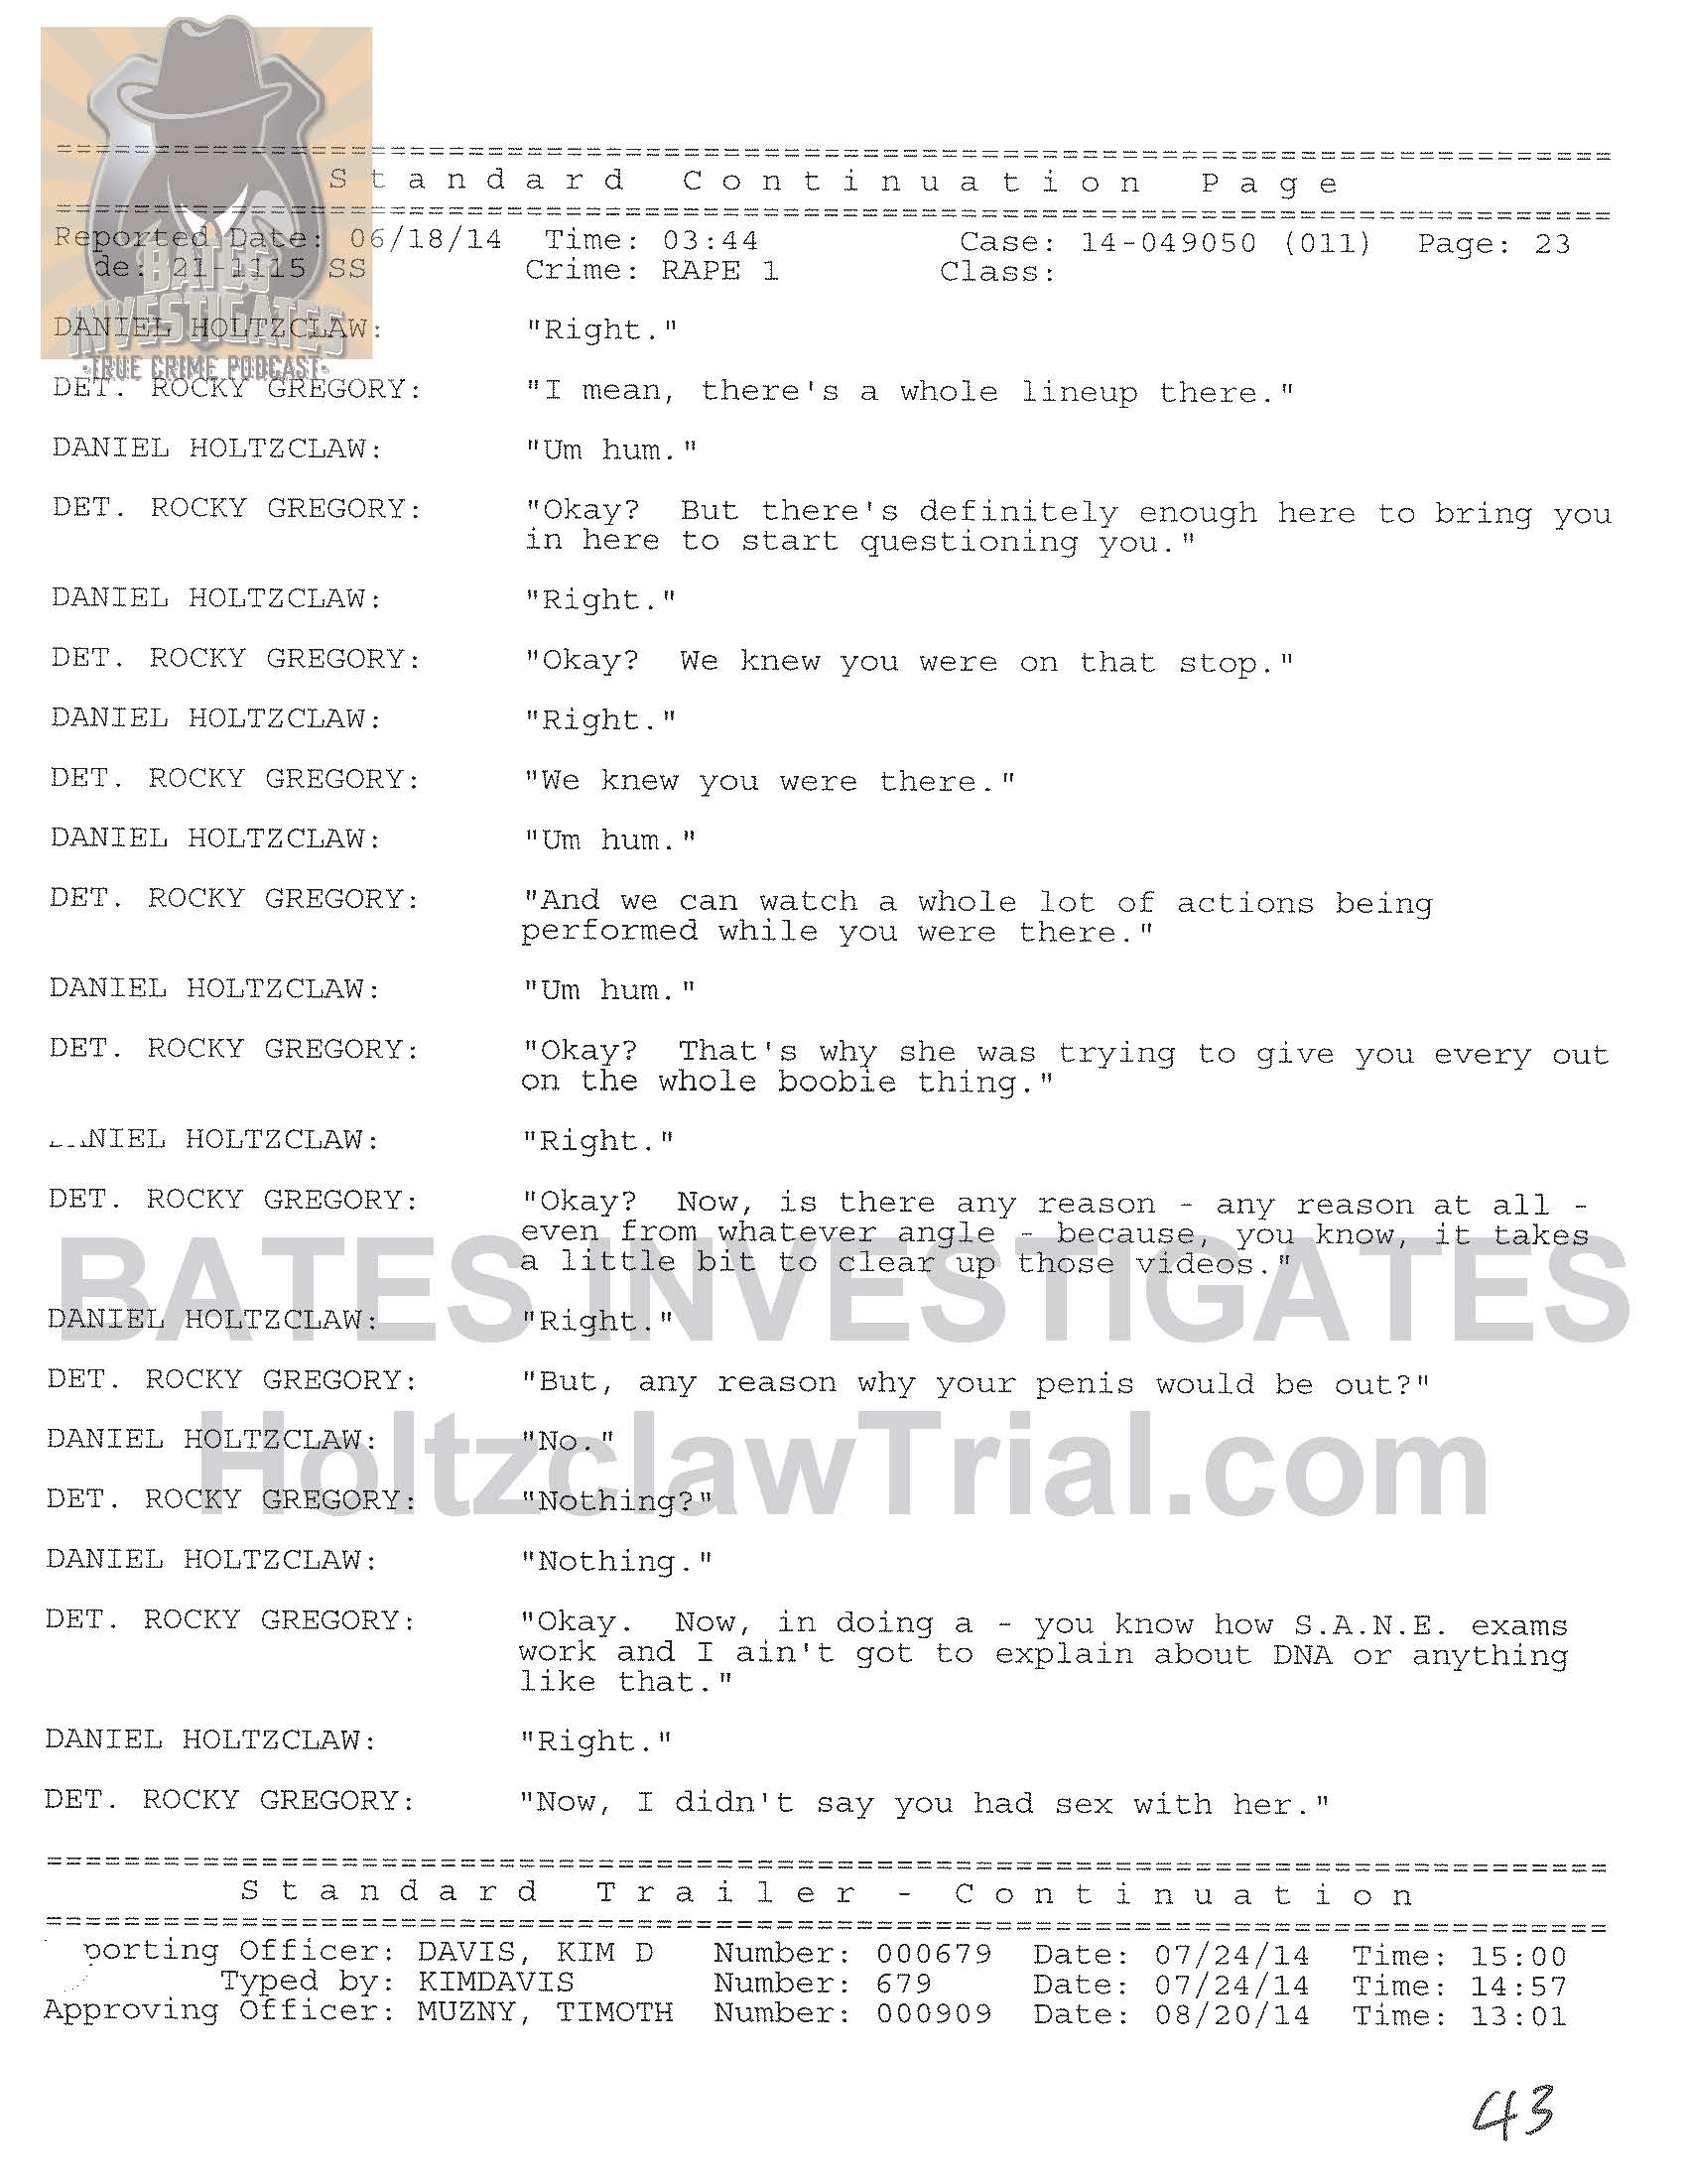 Holtzclaw Interrogation Transcript - Ep02 Redacted_Page_23.jpg